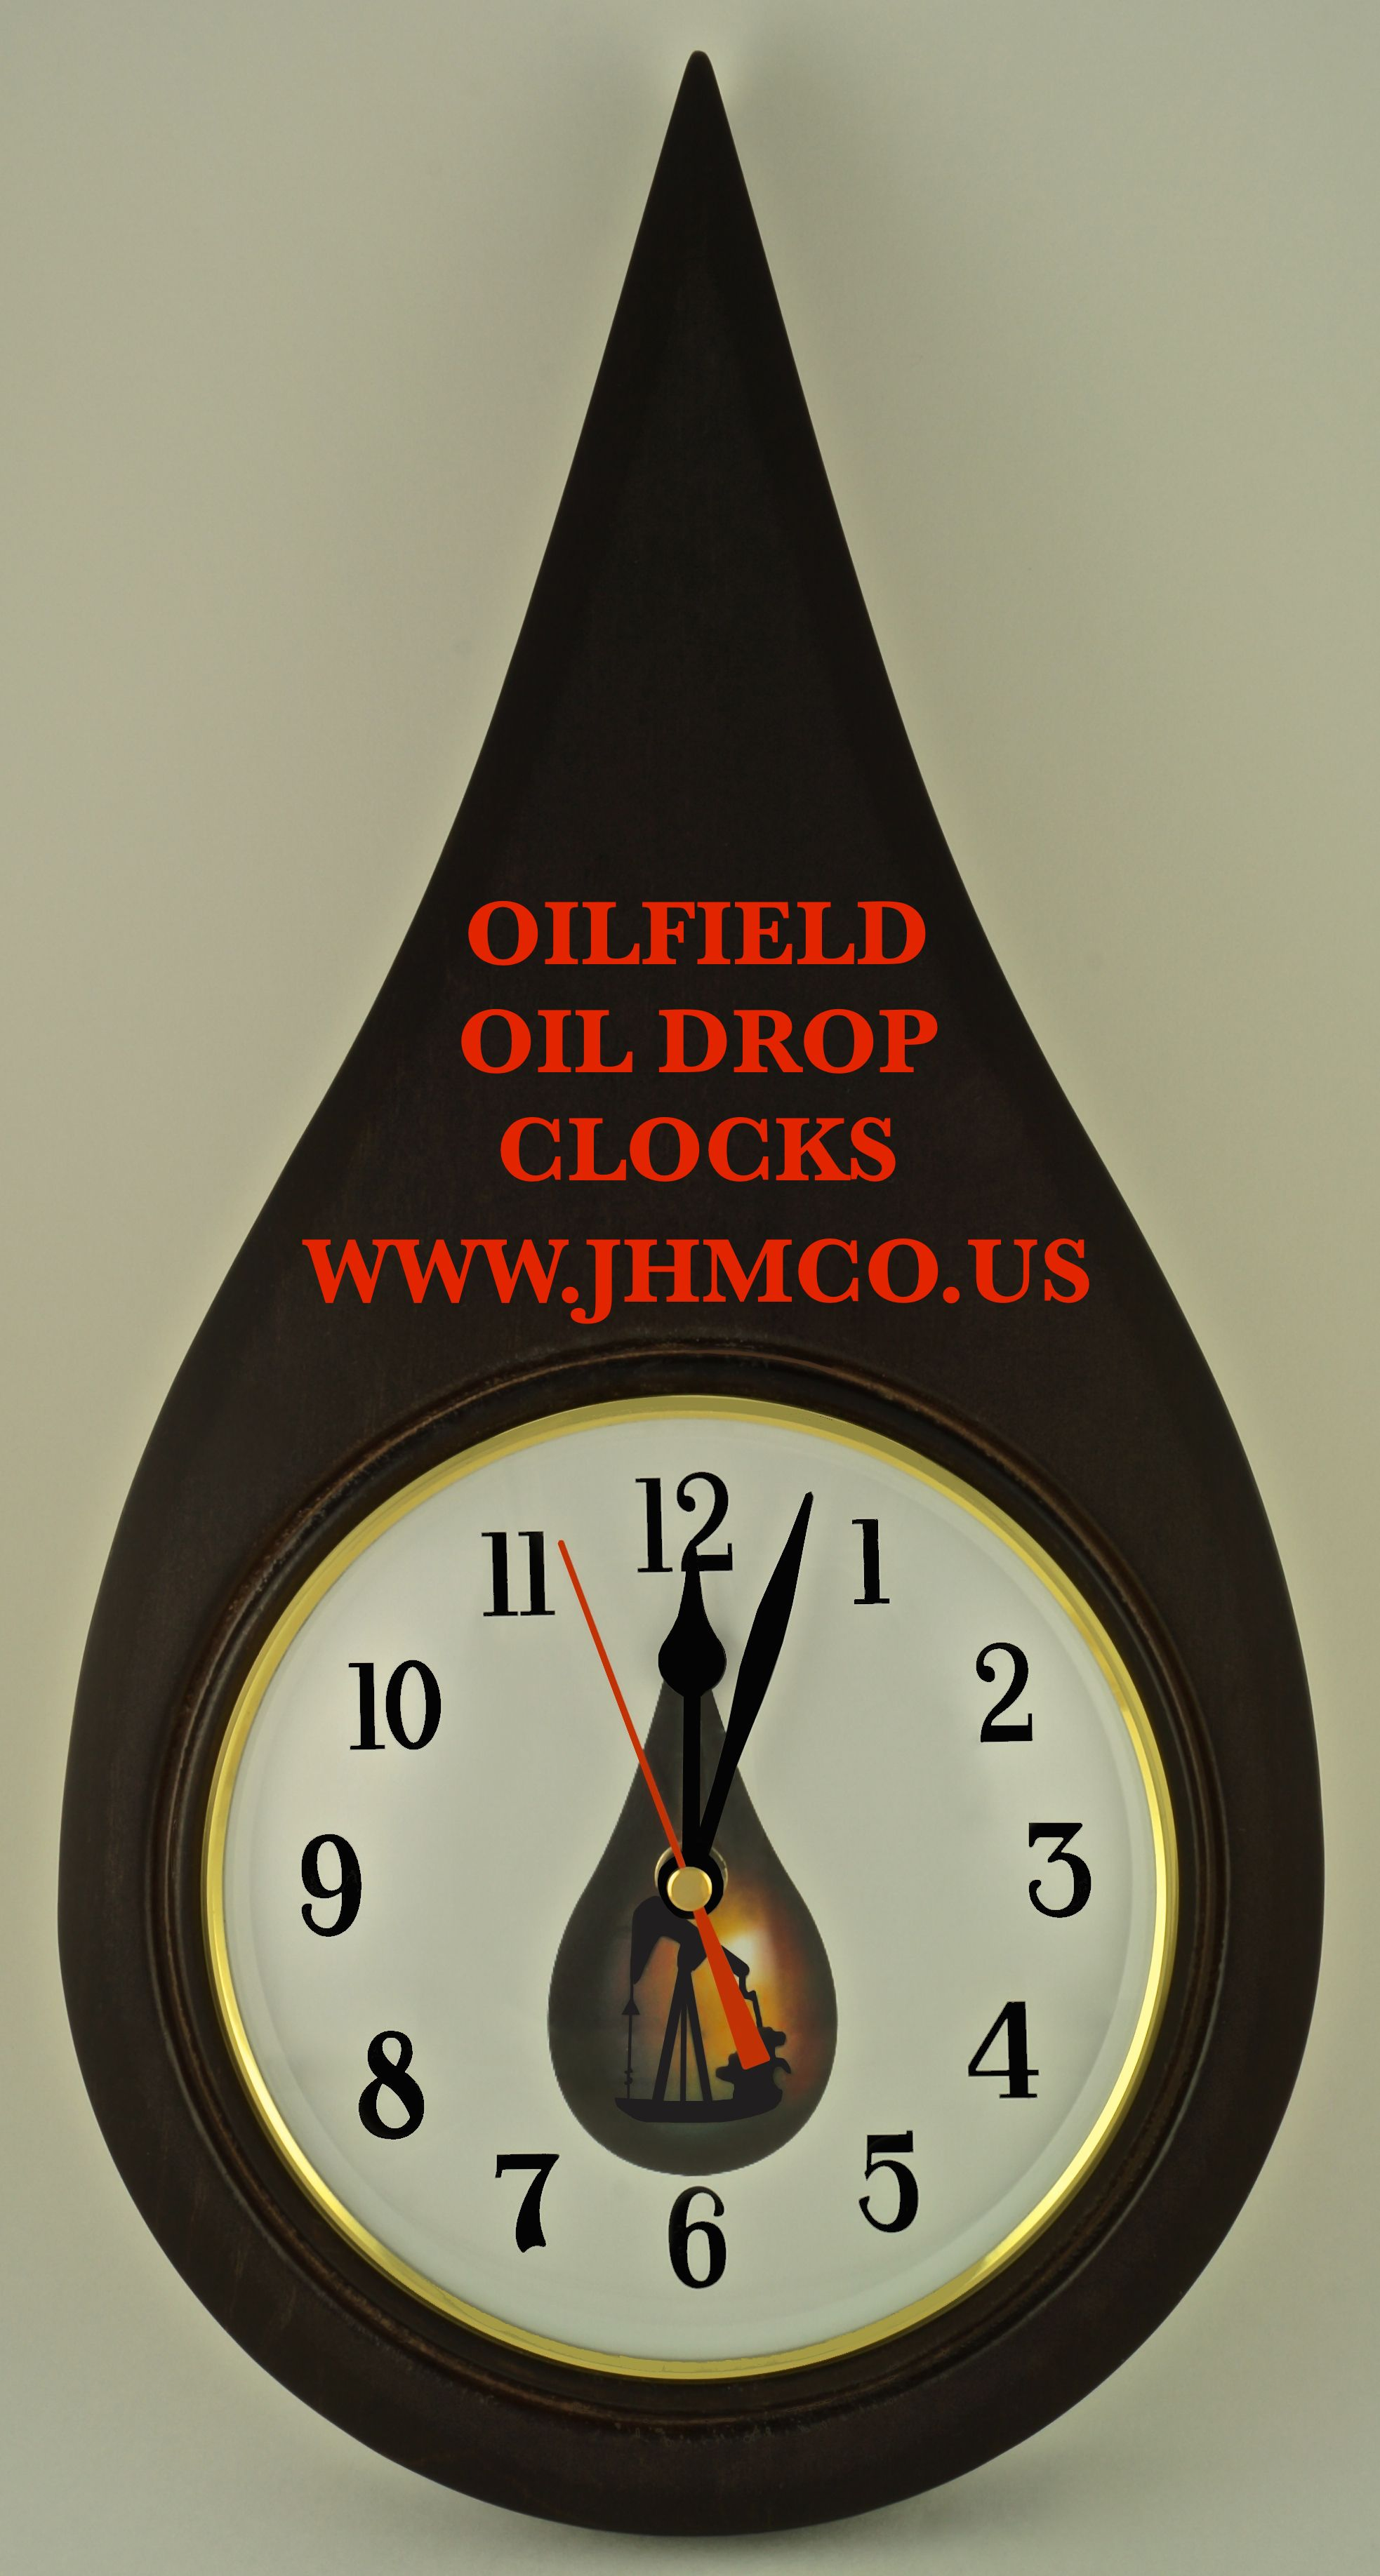 Genial Oilfield Clocks For Office Decor With Oil Well Pump Jack. John H. Martin  Company   Since 1937